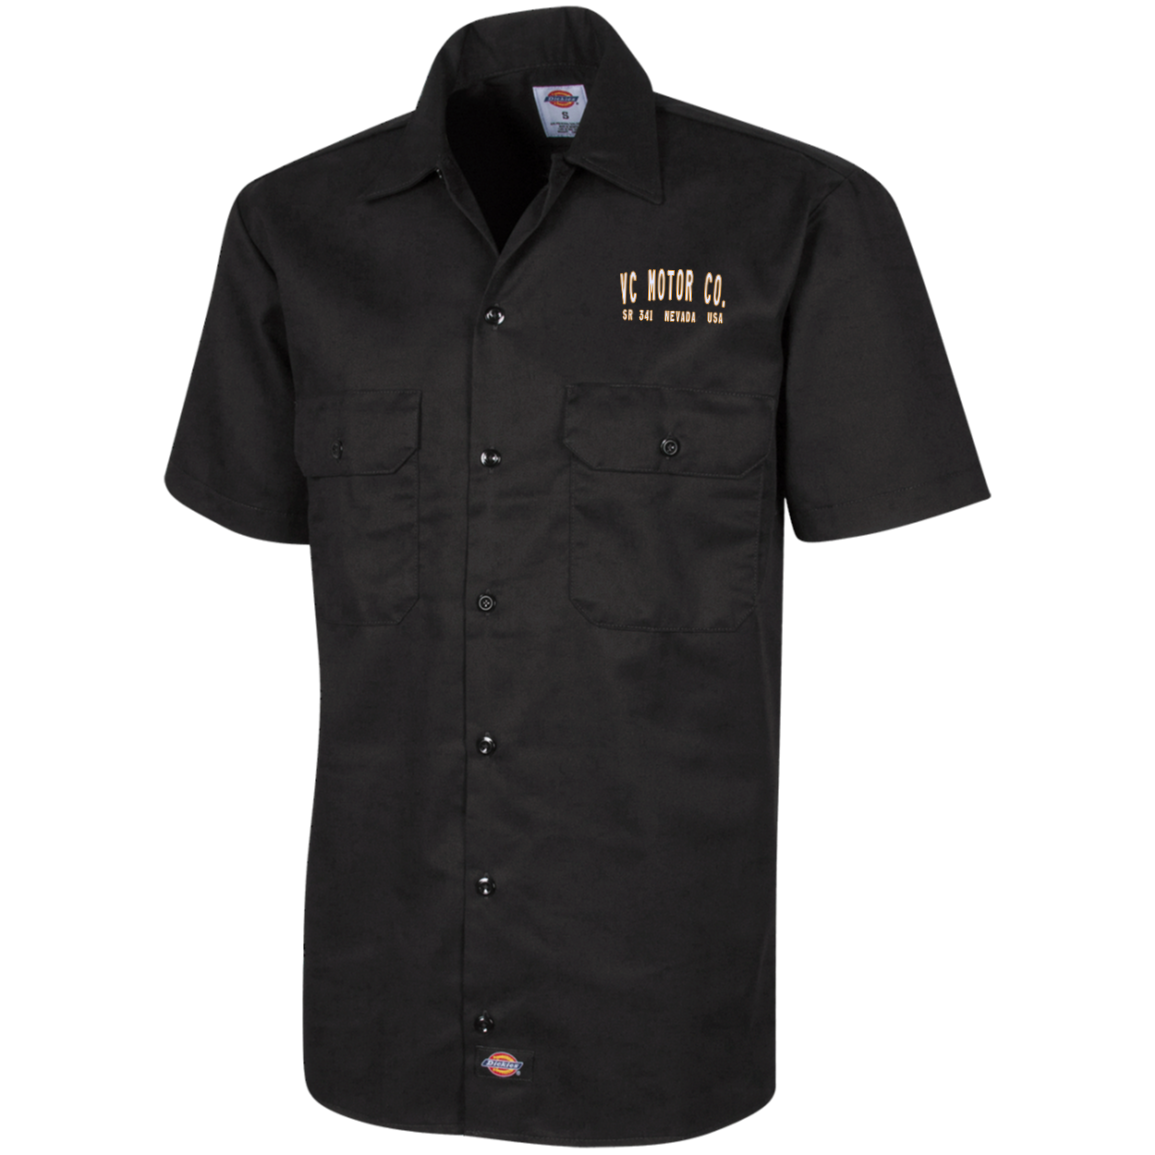 Men's Short Sleeve Workshirt - VC Motor Co. Logo Men's Shirts Virginia City Motorcycle Company Apparel